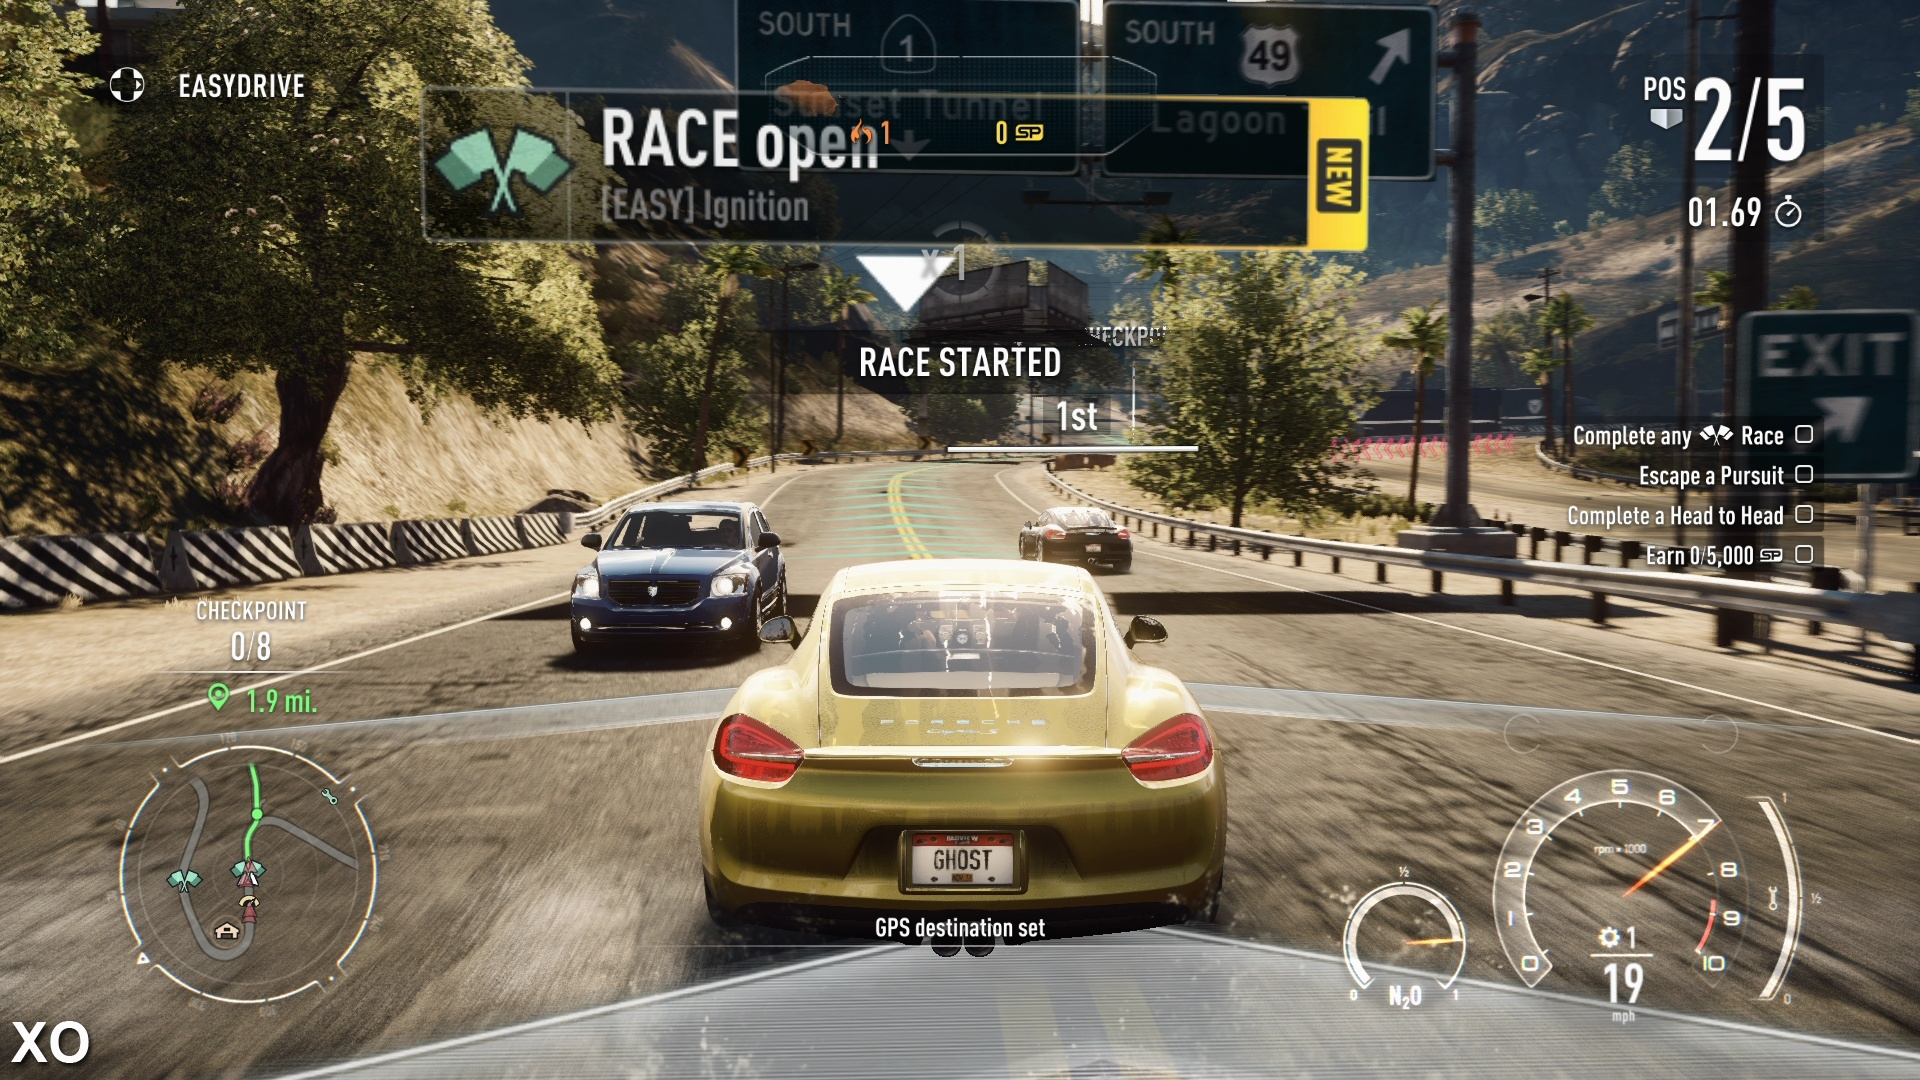 need for speed rivals release date pc europe Need for speed rivals gameplay - racer personalization trailer info 2013 ( north america) & november 21, 2013 (europe), for pc, ps3 and xbox 360.